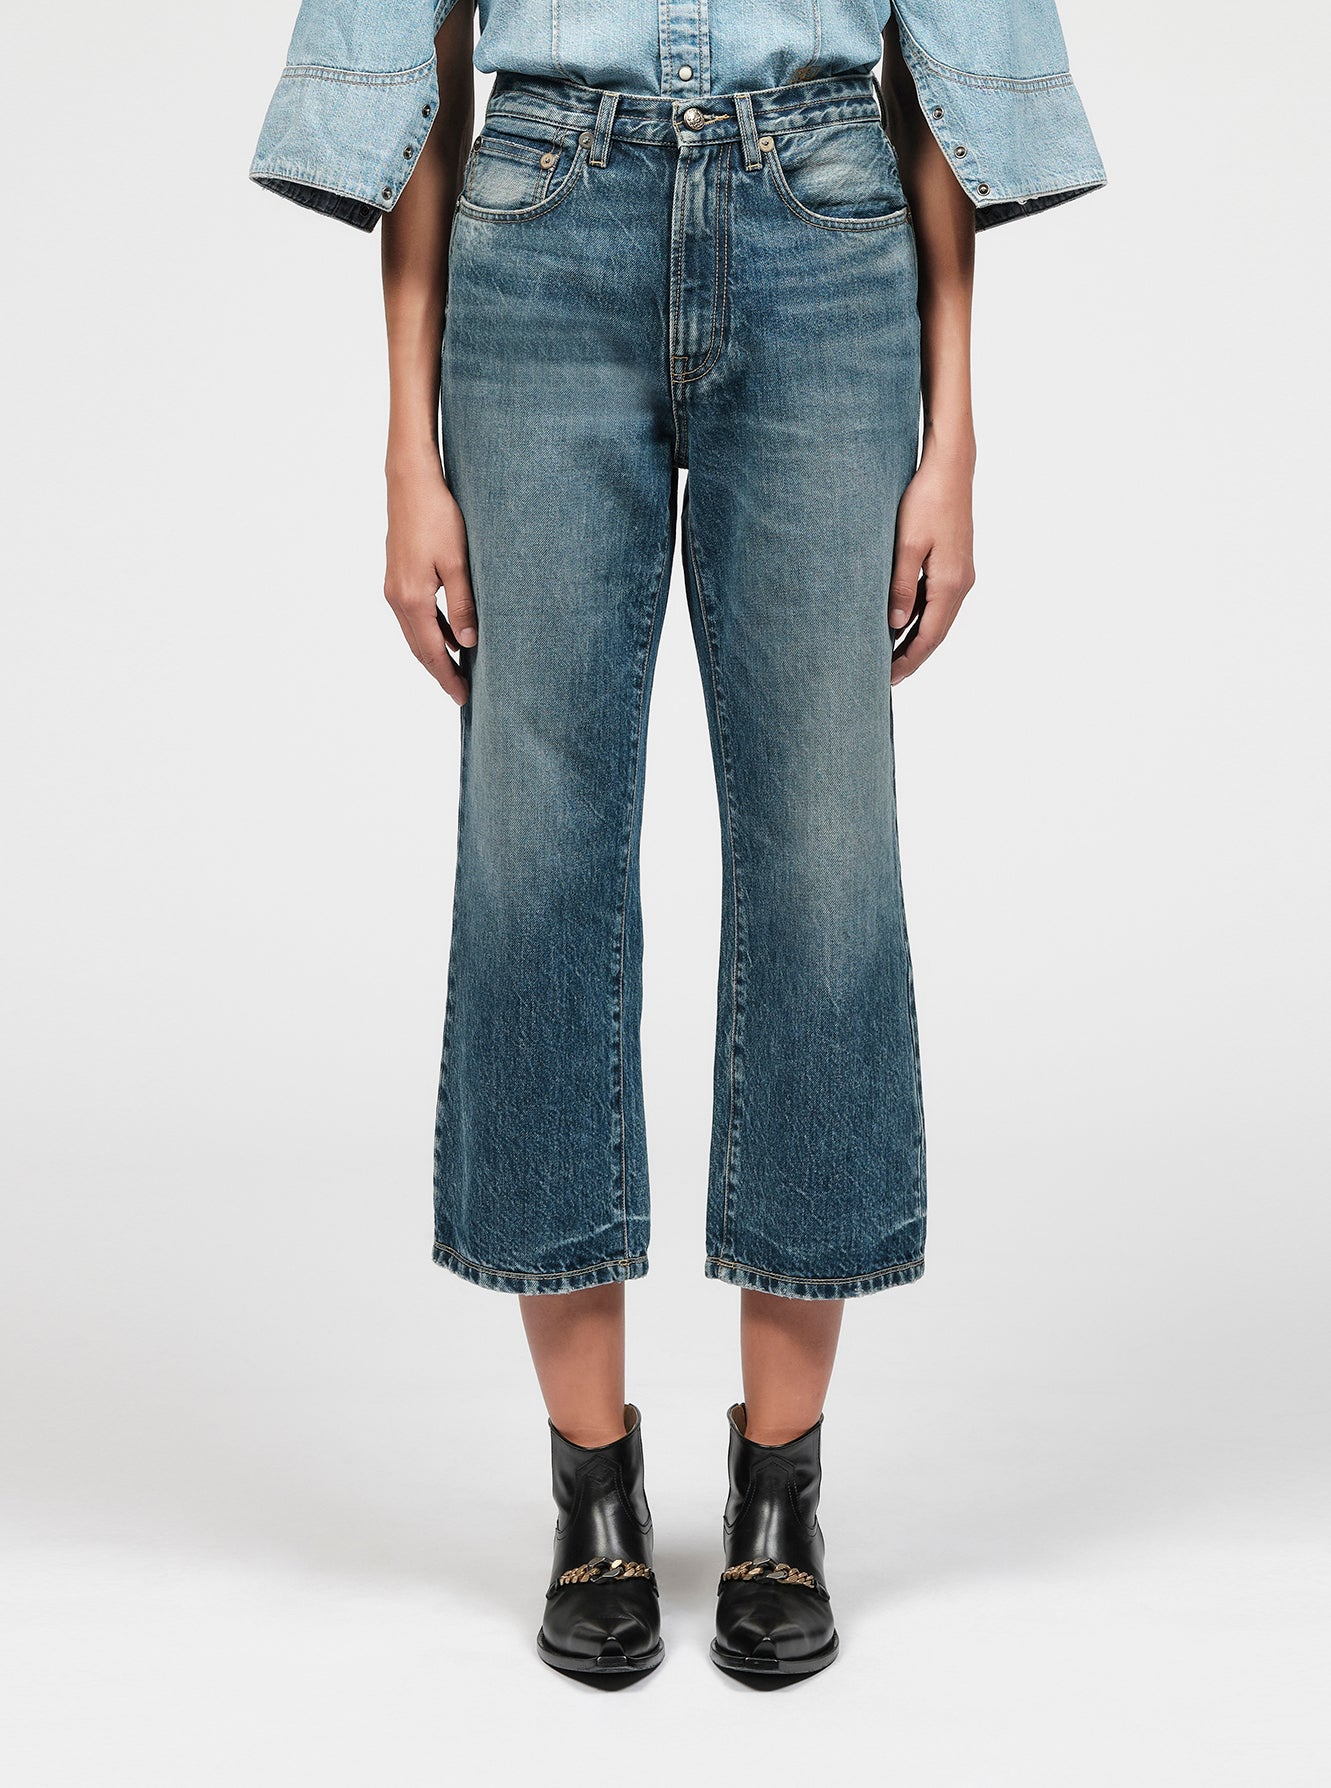 Washed denim boyfriend jeans